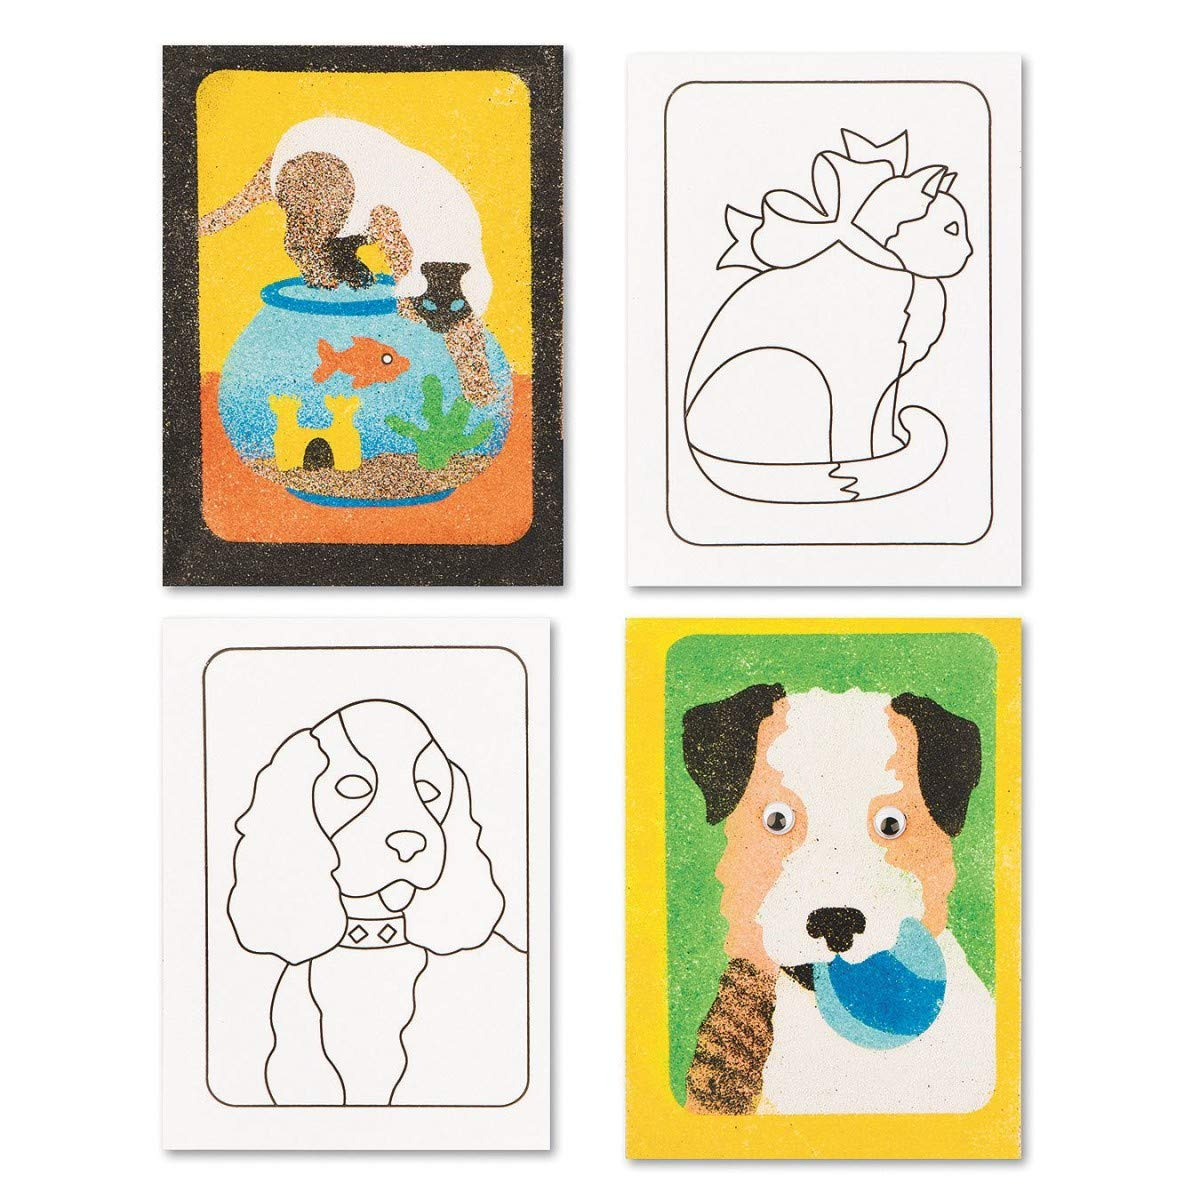 Sand Art Boards 5x7 - Dogs & Cats S&S WORLDWIDE CF-1442